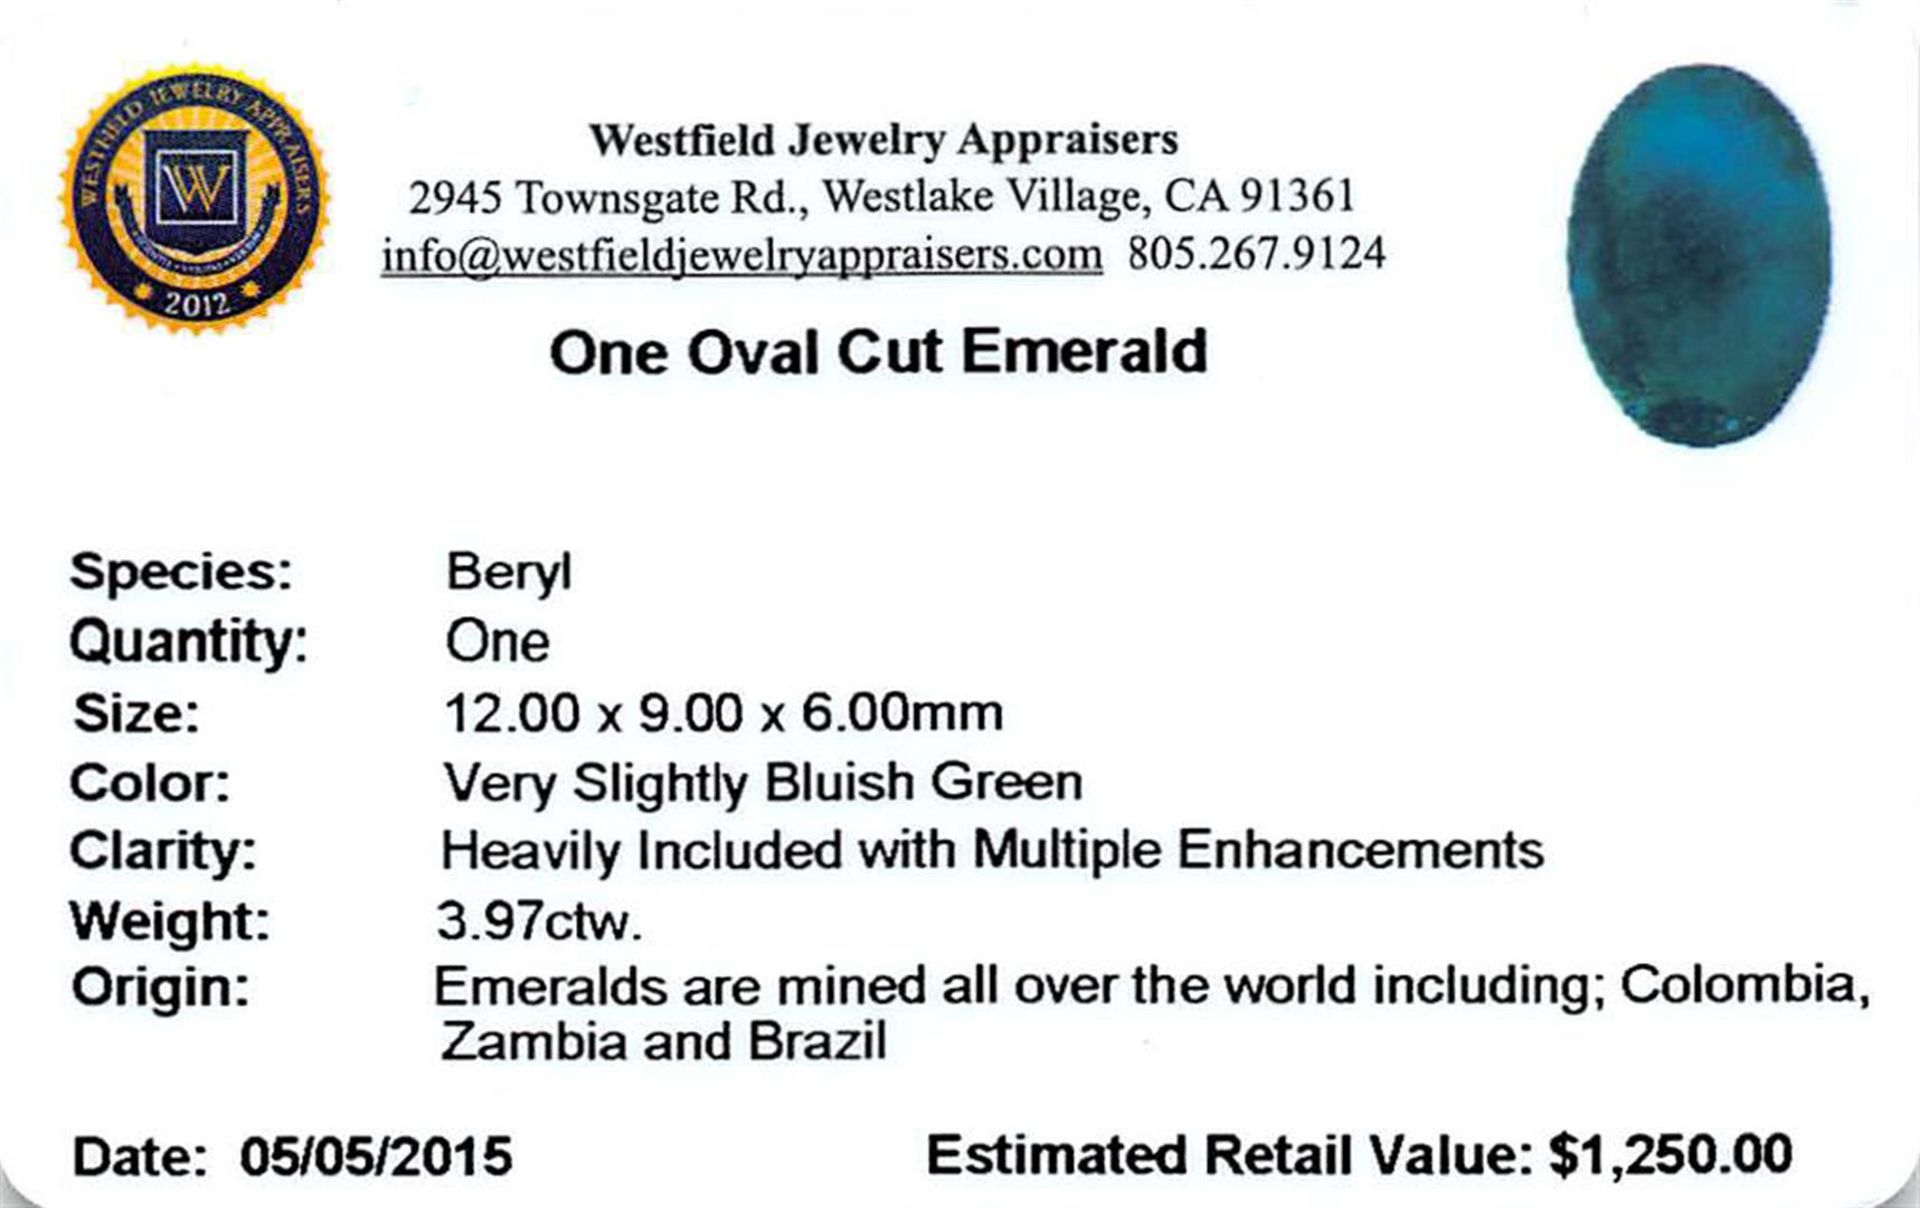 3.97 ctw Oval Emerald Parcel - Image 2 of 2